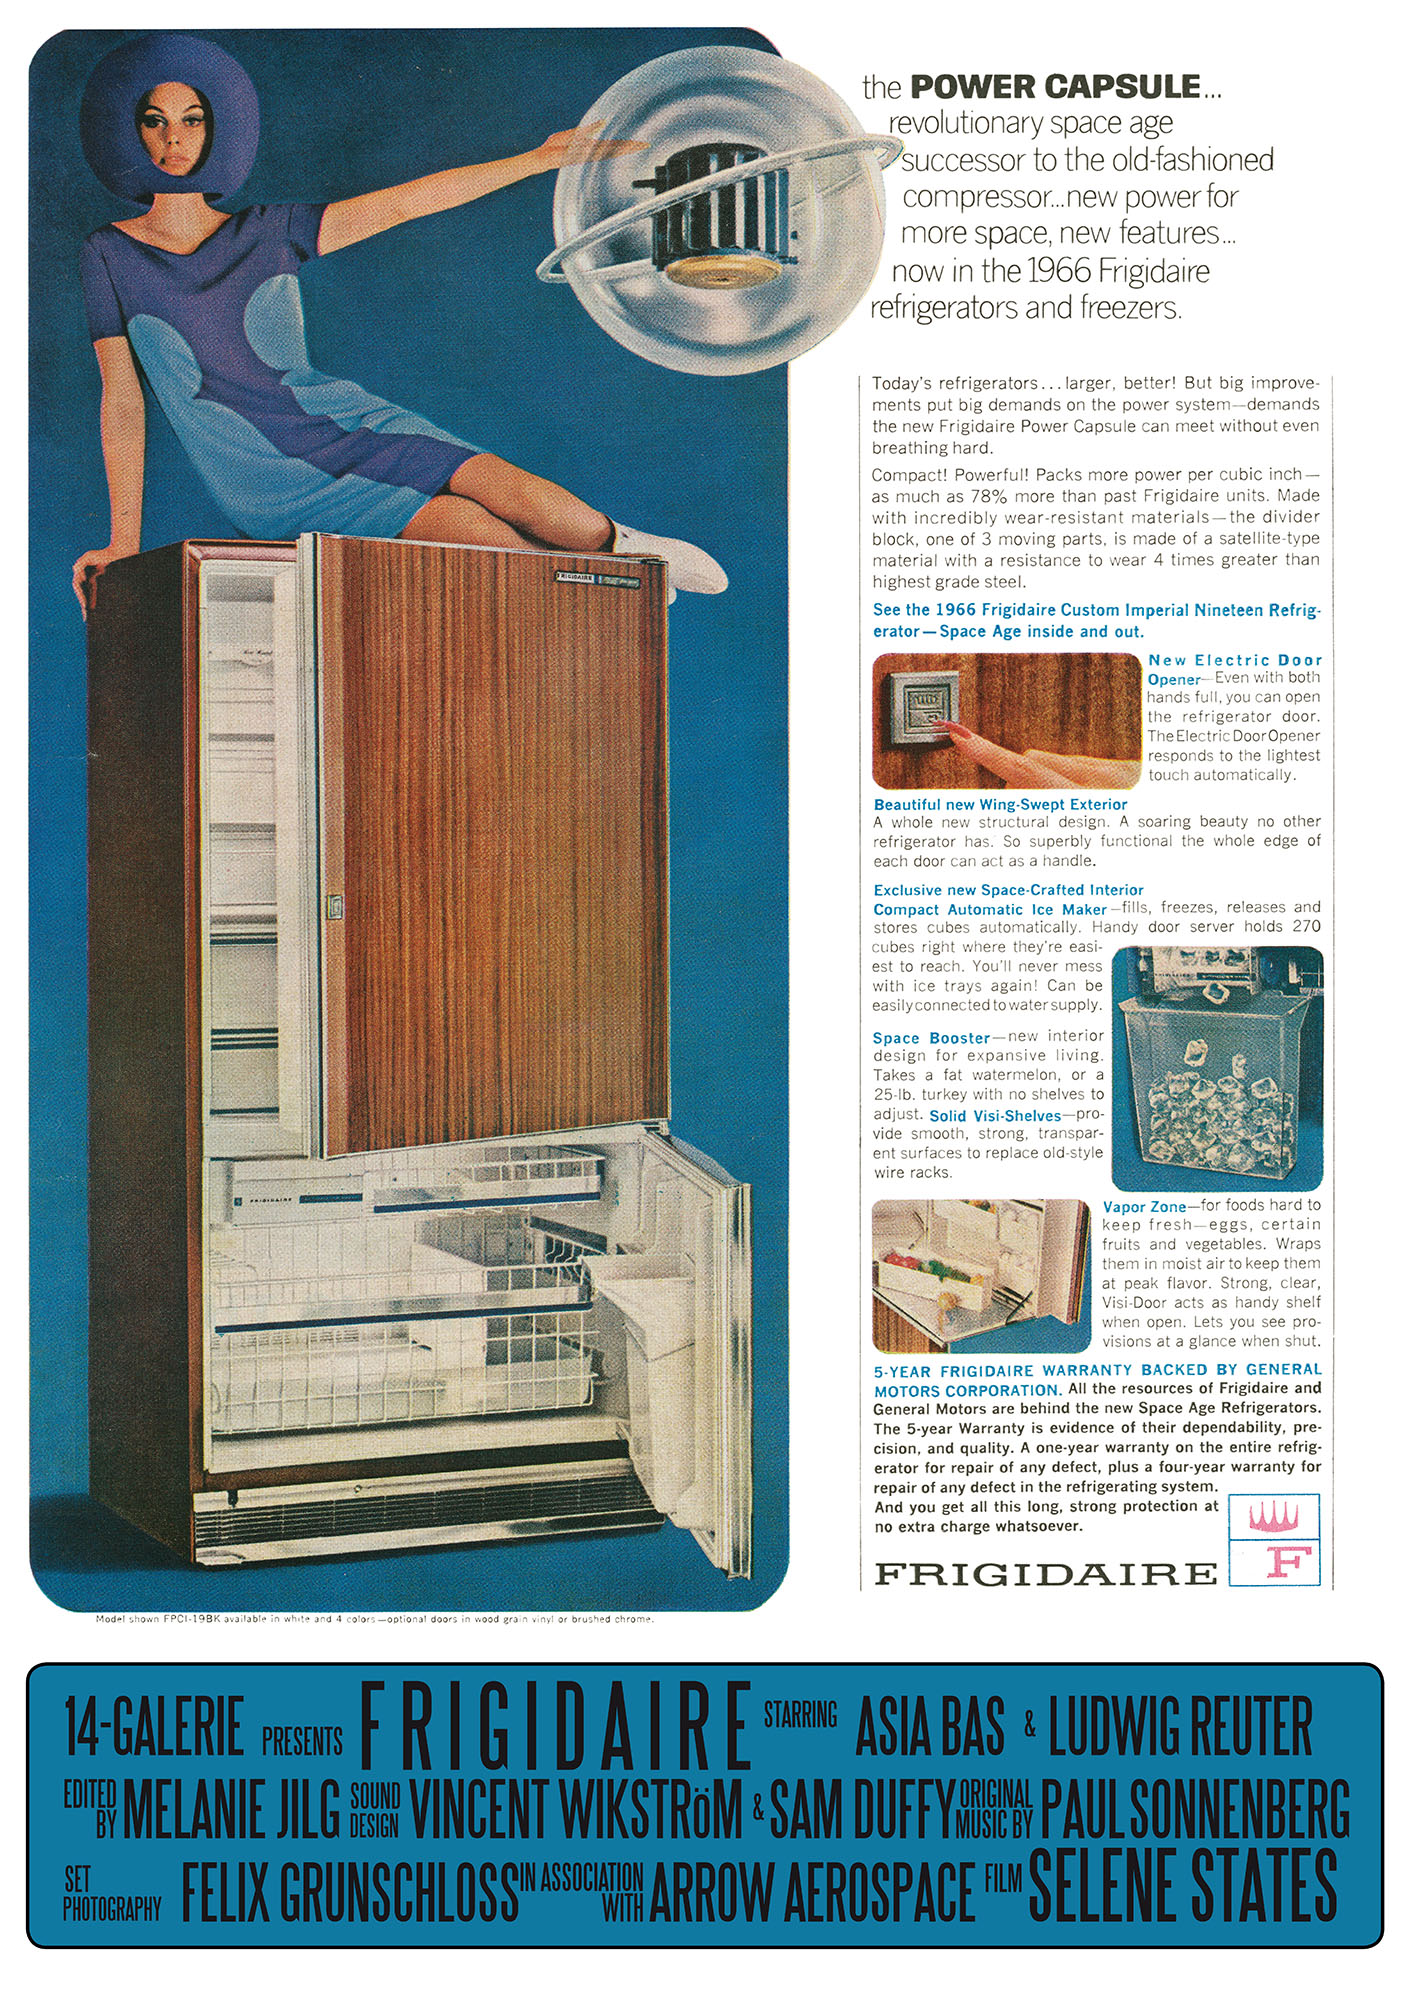 Frigidaire Movie Posters